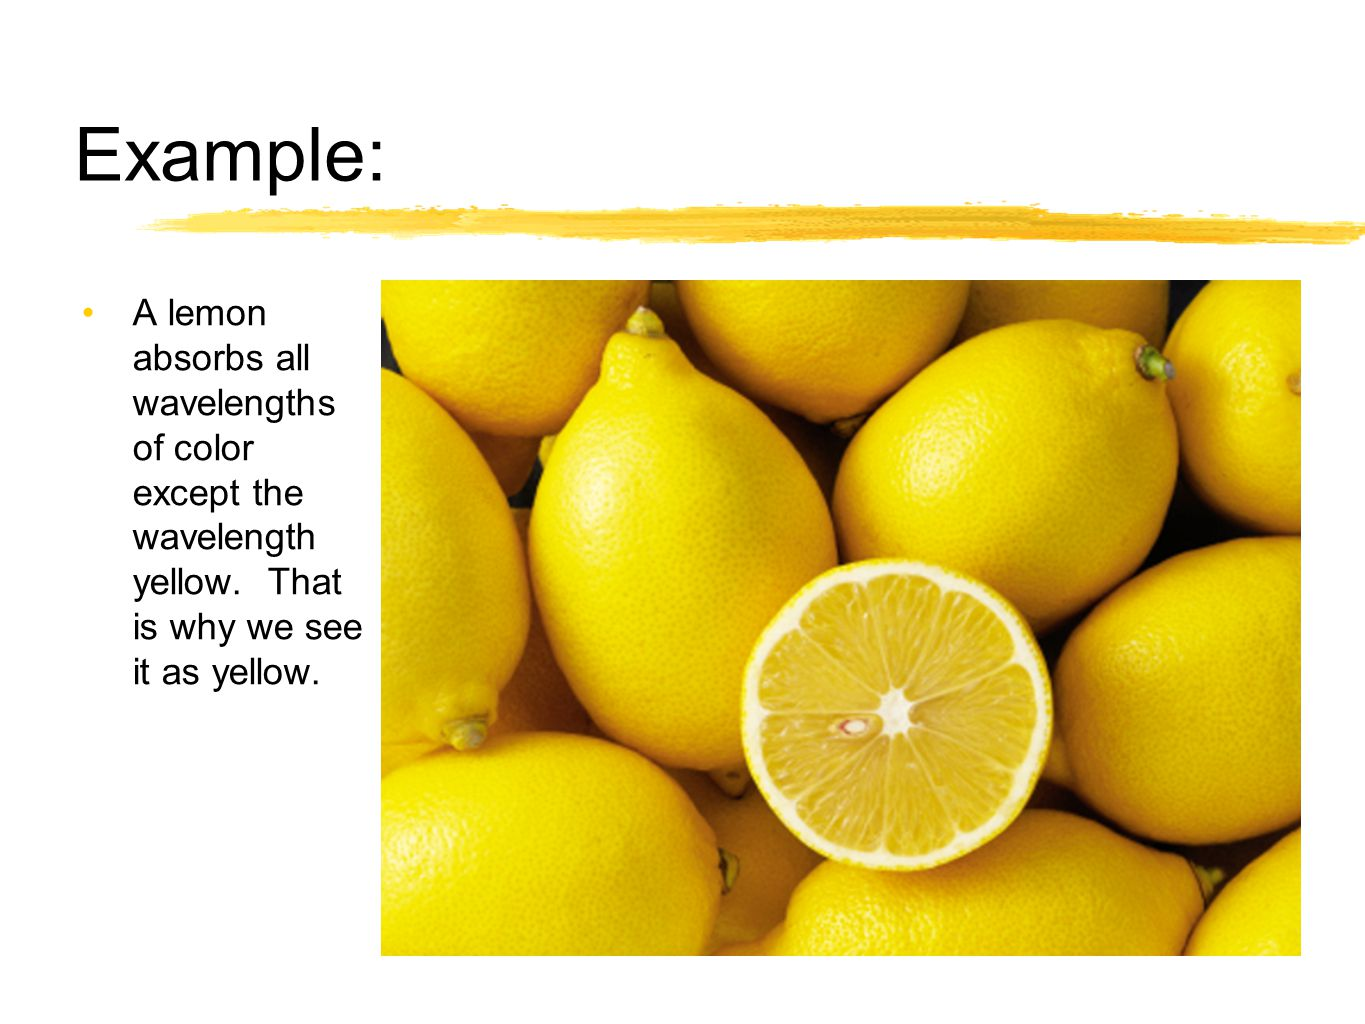 Example: A lemon absorbs all wavelengths of color except the wavelength yellow.